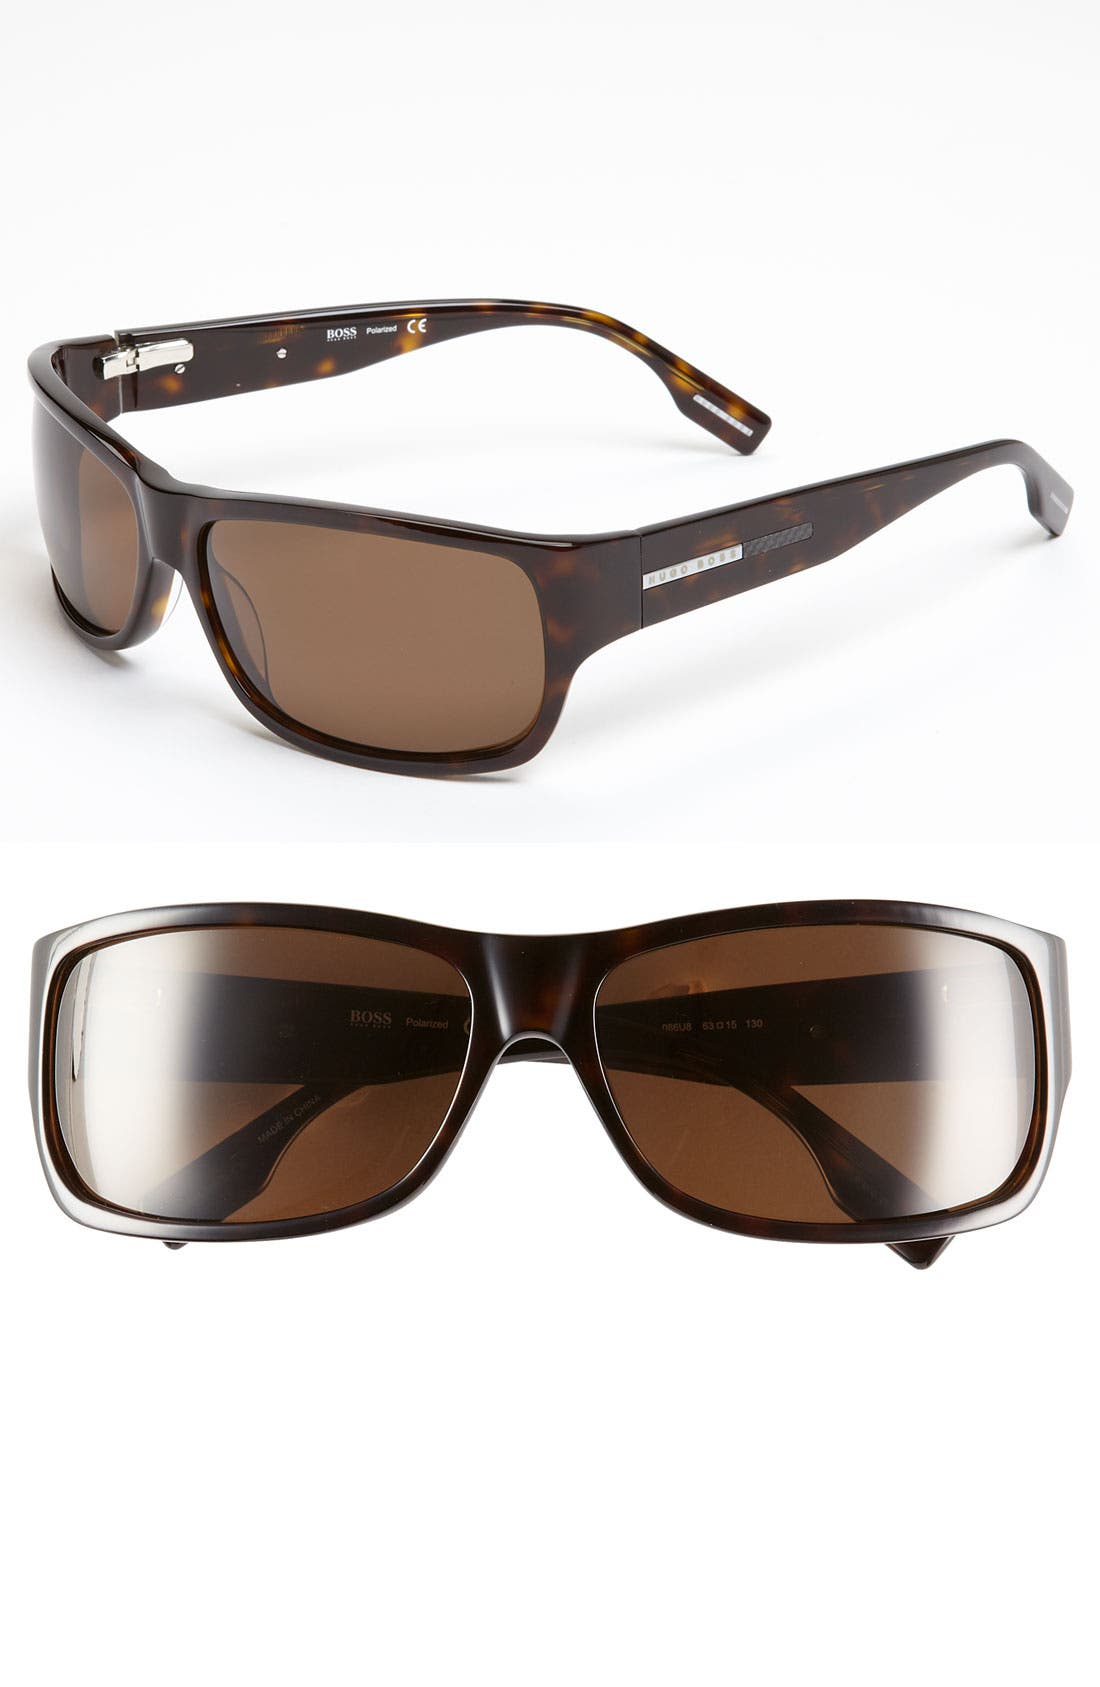 Alternate Image 1 Selected - BOSS Black Polarized 63mm Sunglasses